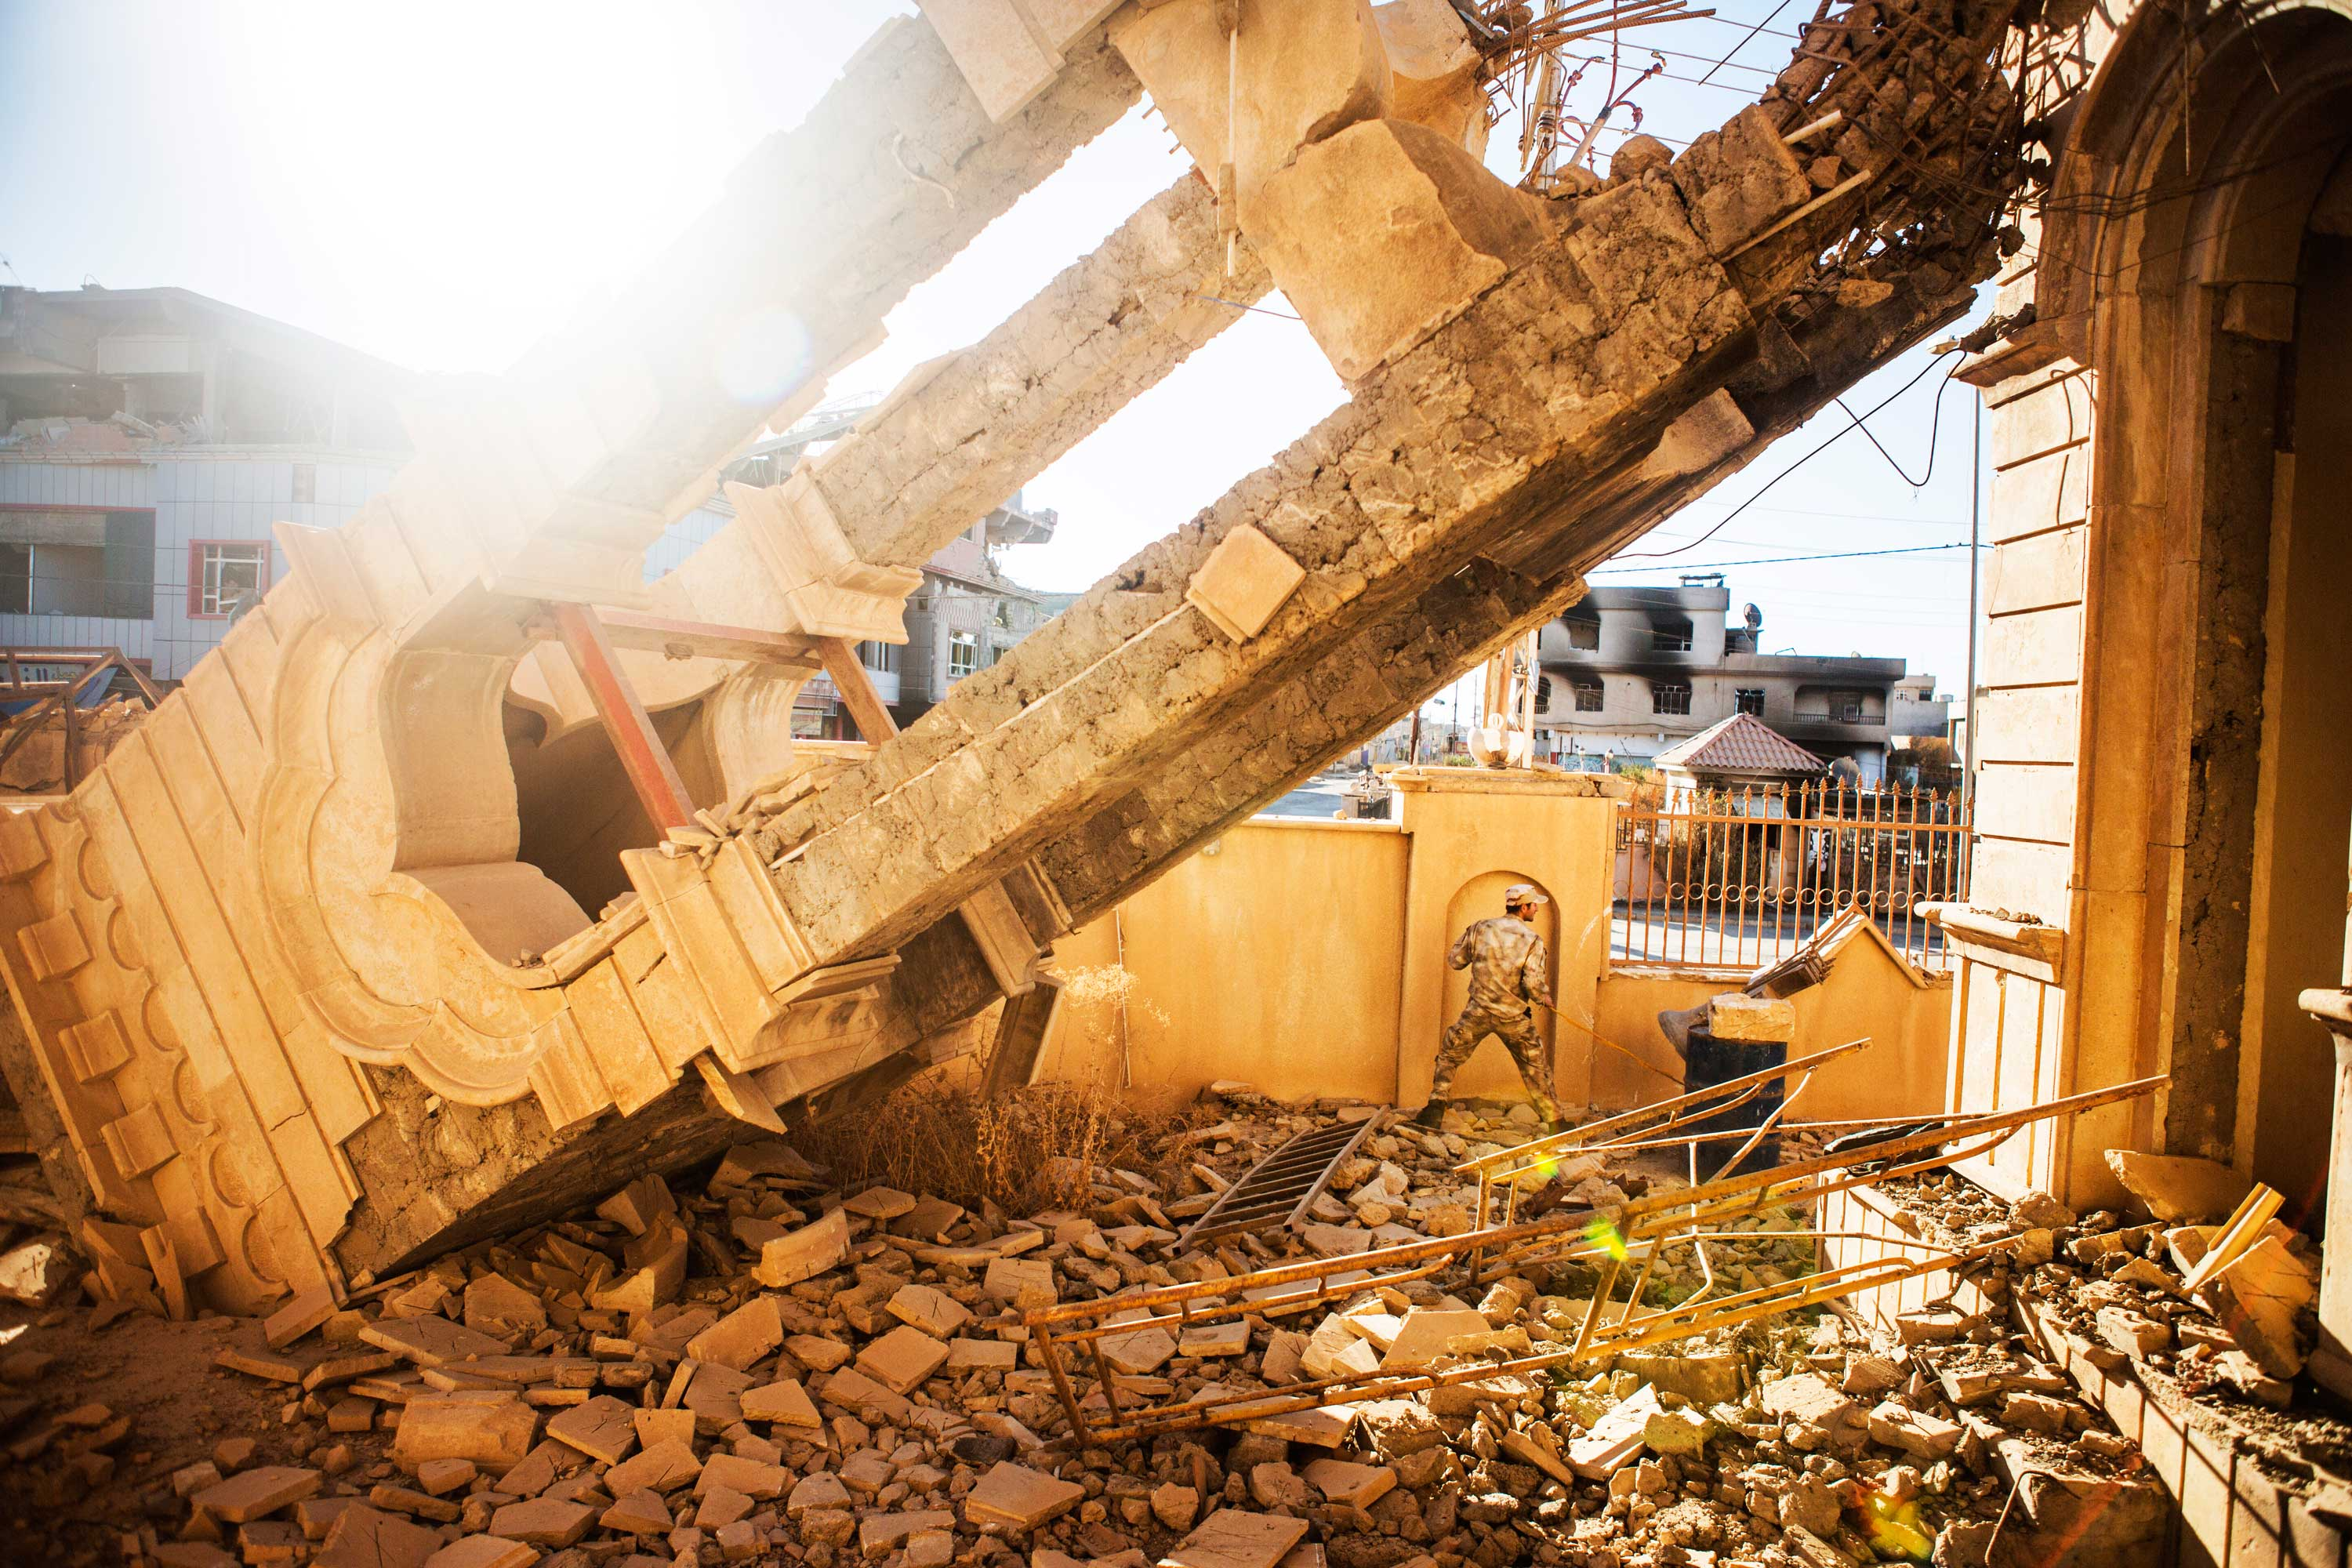 The tower bell of Saint Banham and Saint Sara Church, an Aramean Syrian Catholic Church, destroyed by ISIS. An Iraqi soldier is ringing the bell, which fell down in the tower's destruction.